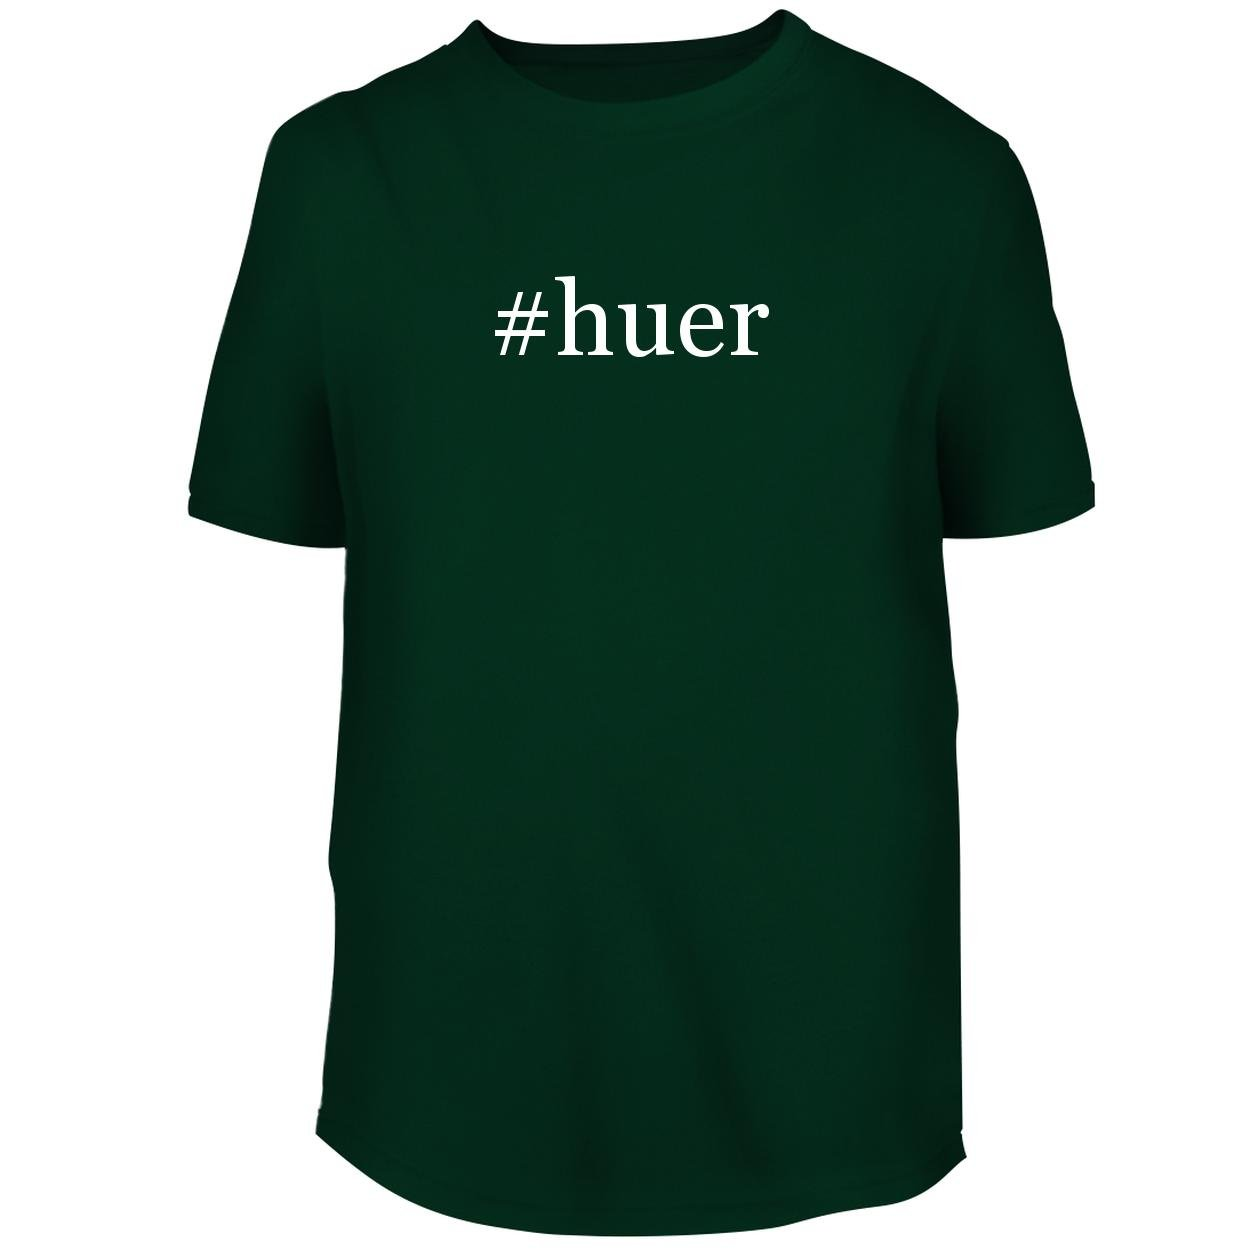 BH Cool Designs #Huer - Men's Graphic Tee, Forest, Large